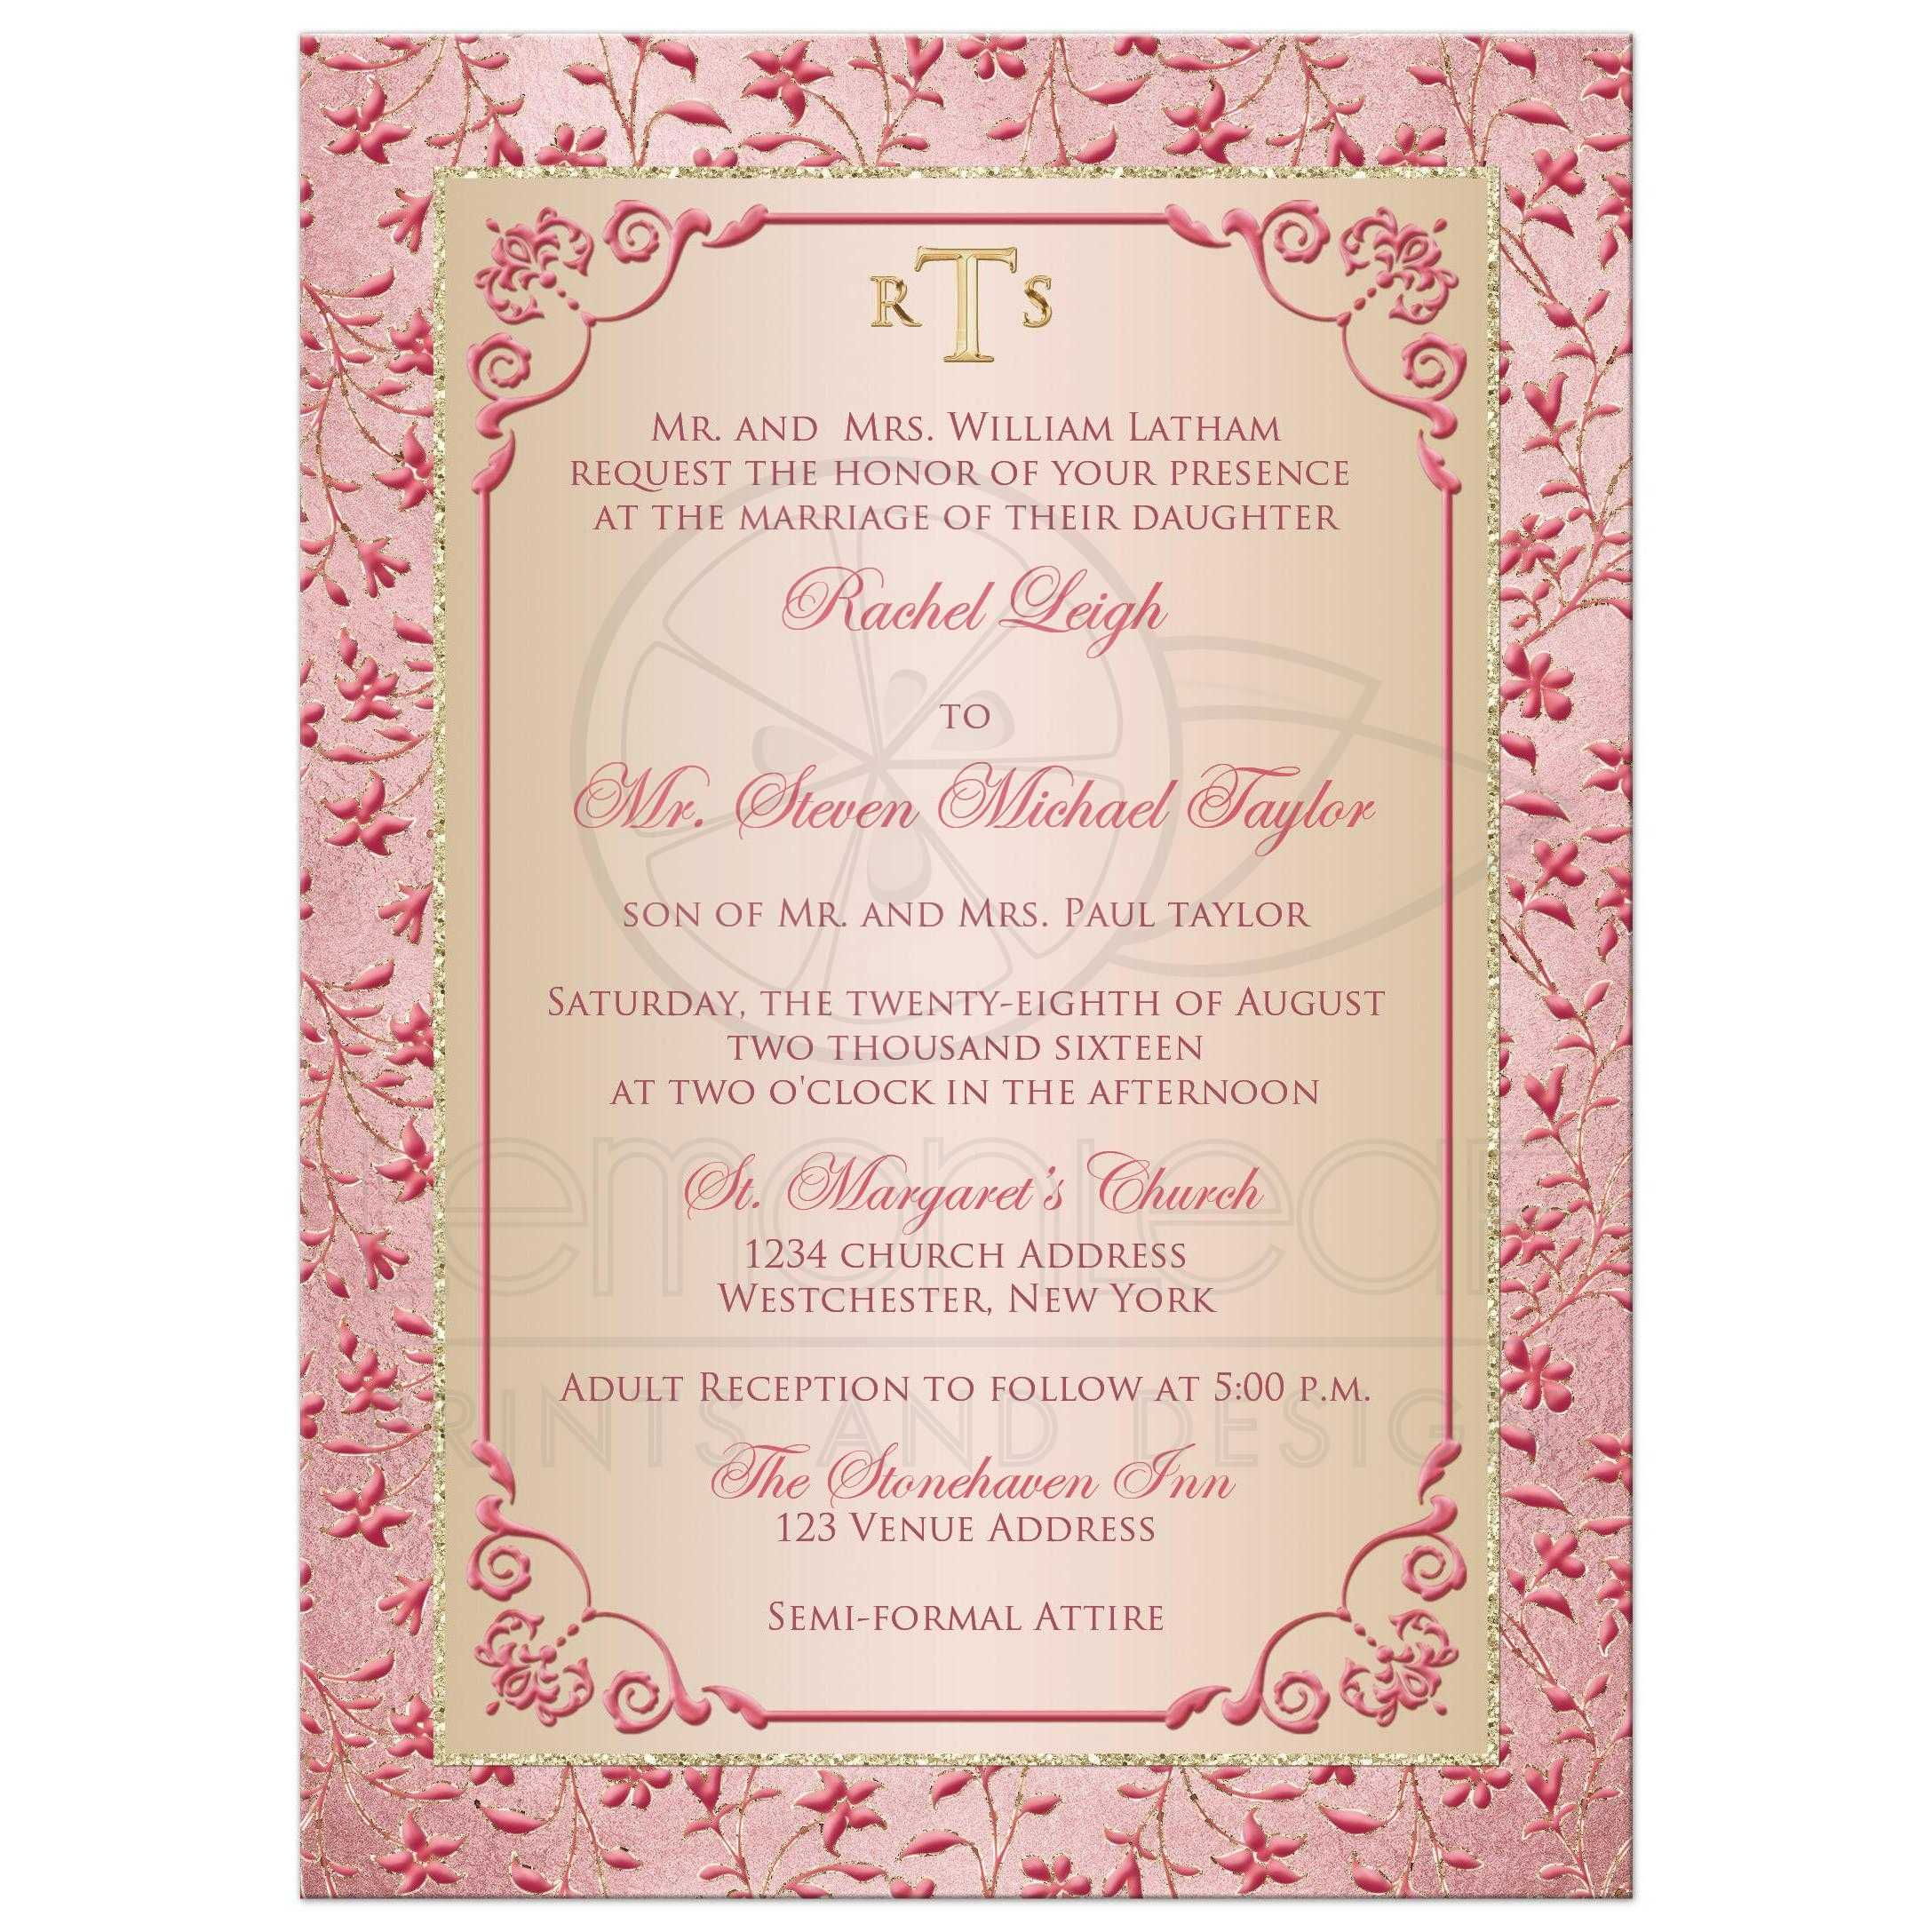 Monogrammed wedding invitation blush pink dusty rose champagne great monogrammed blush pink dusty rose champagne and gold floral wedding invite with stopboris Gallery